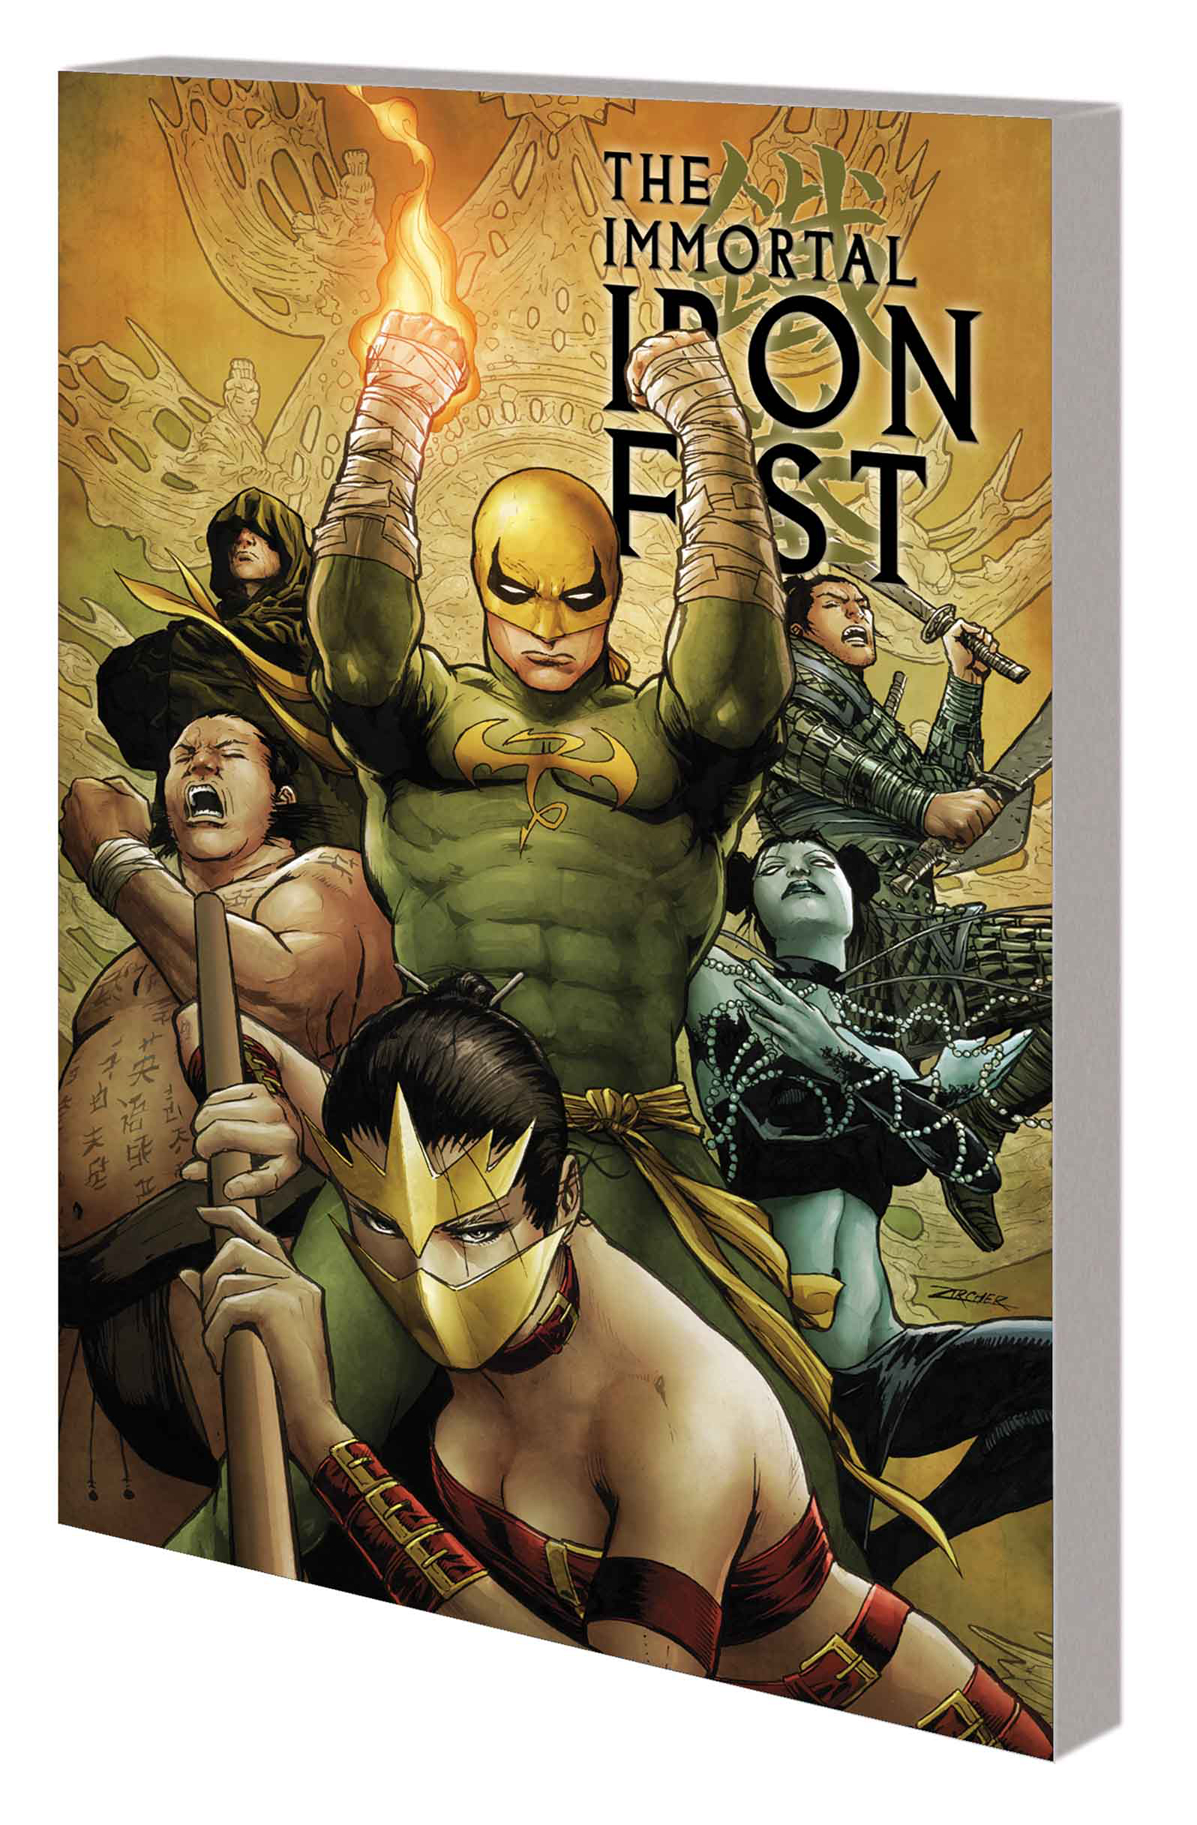 IMMORTAL IRON FIST COMPLETE COLLECTION TP VOL 02